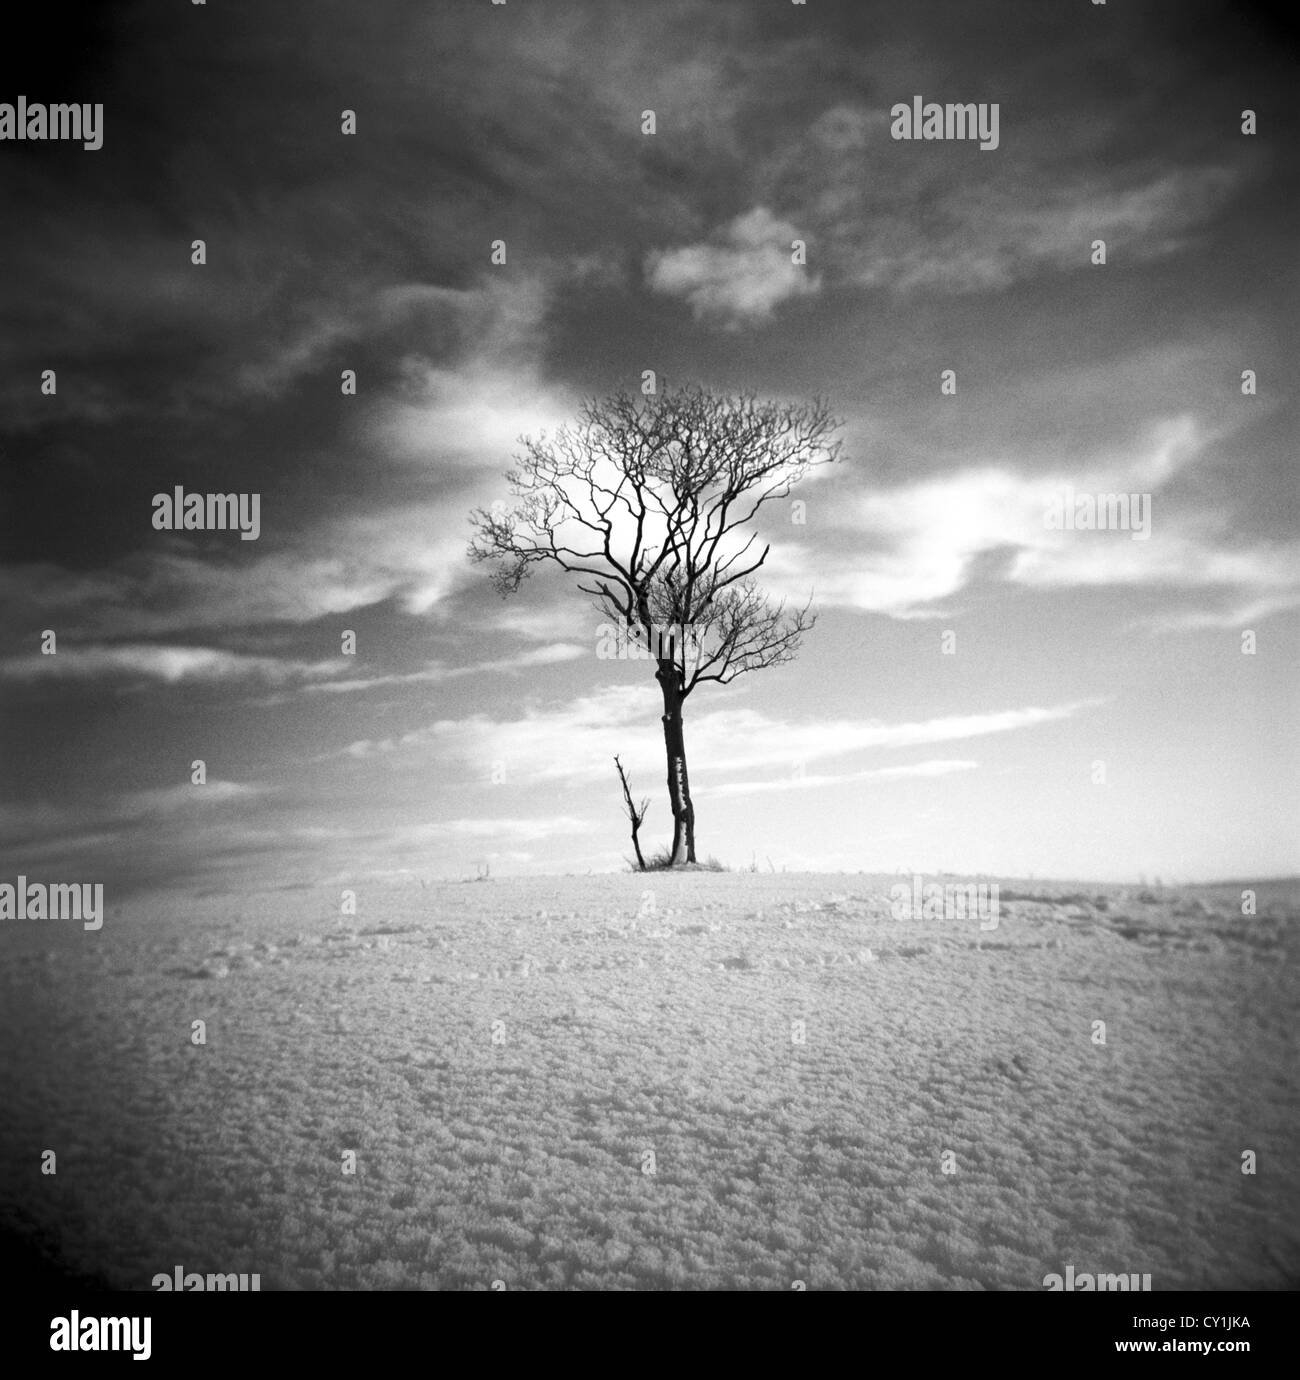 Lone tree in a barren landscape under warm sky - Stock Image